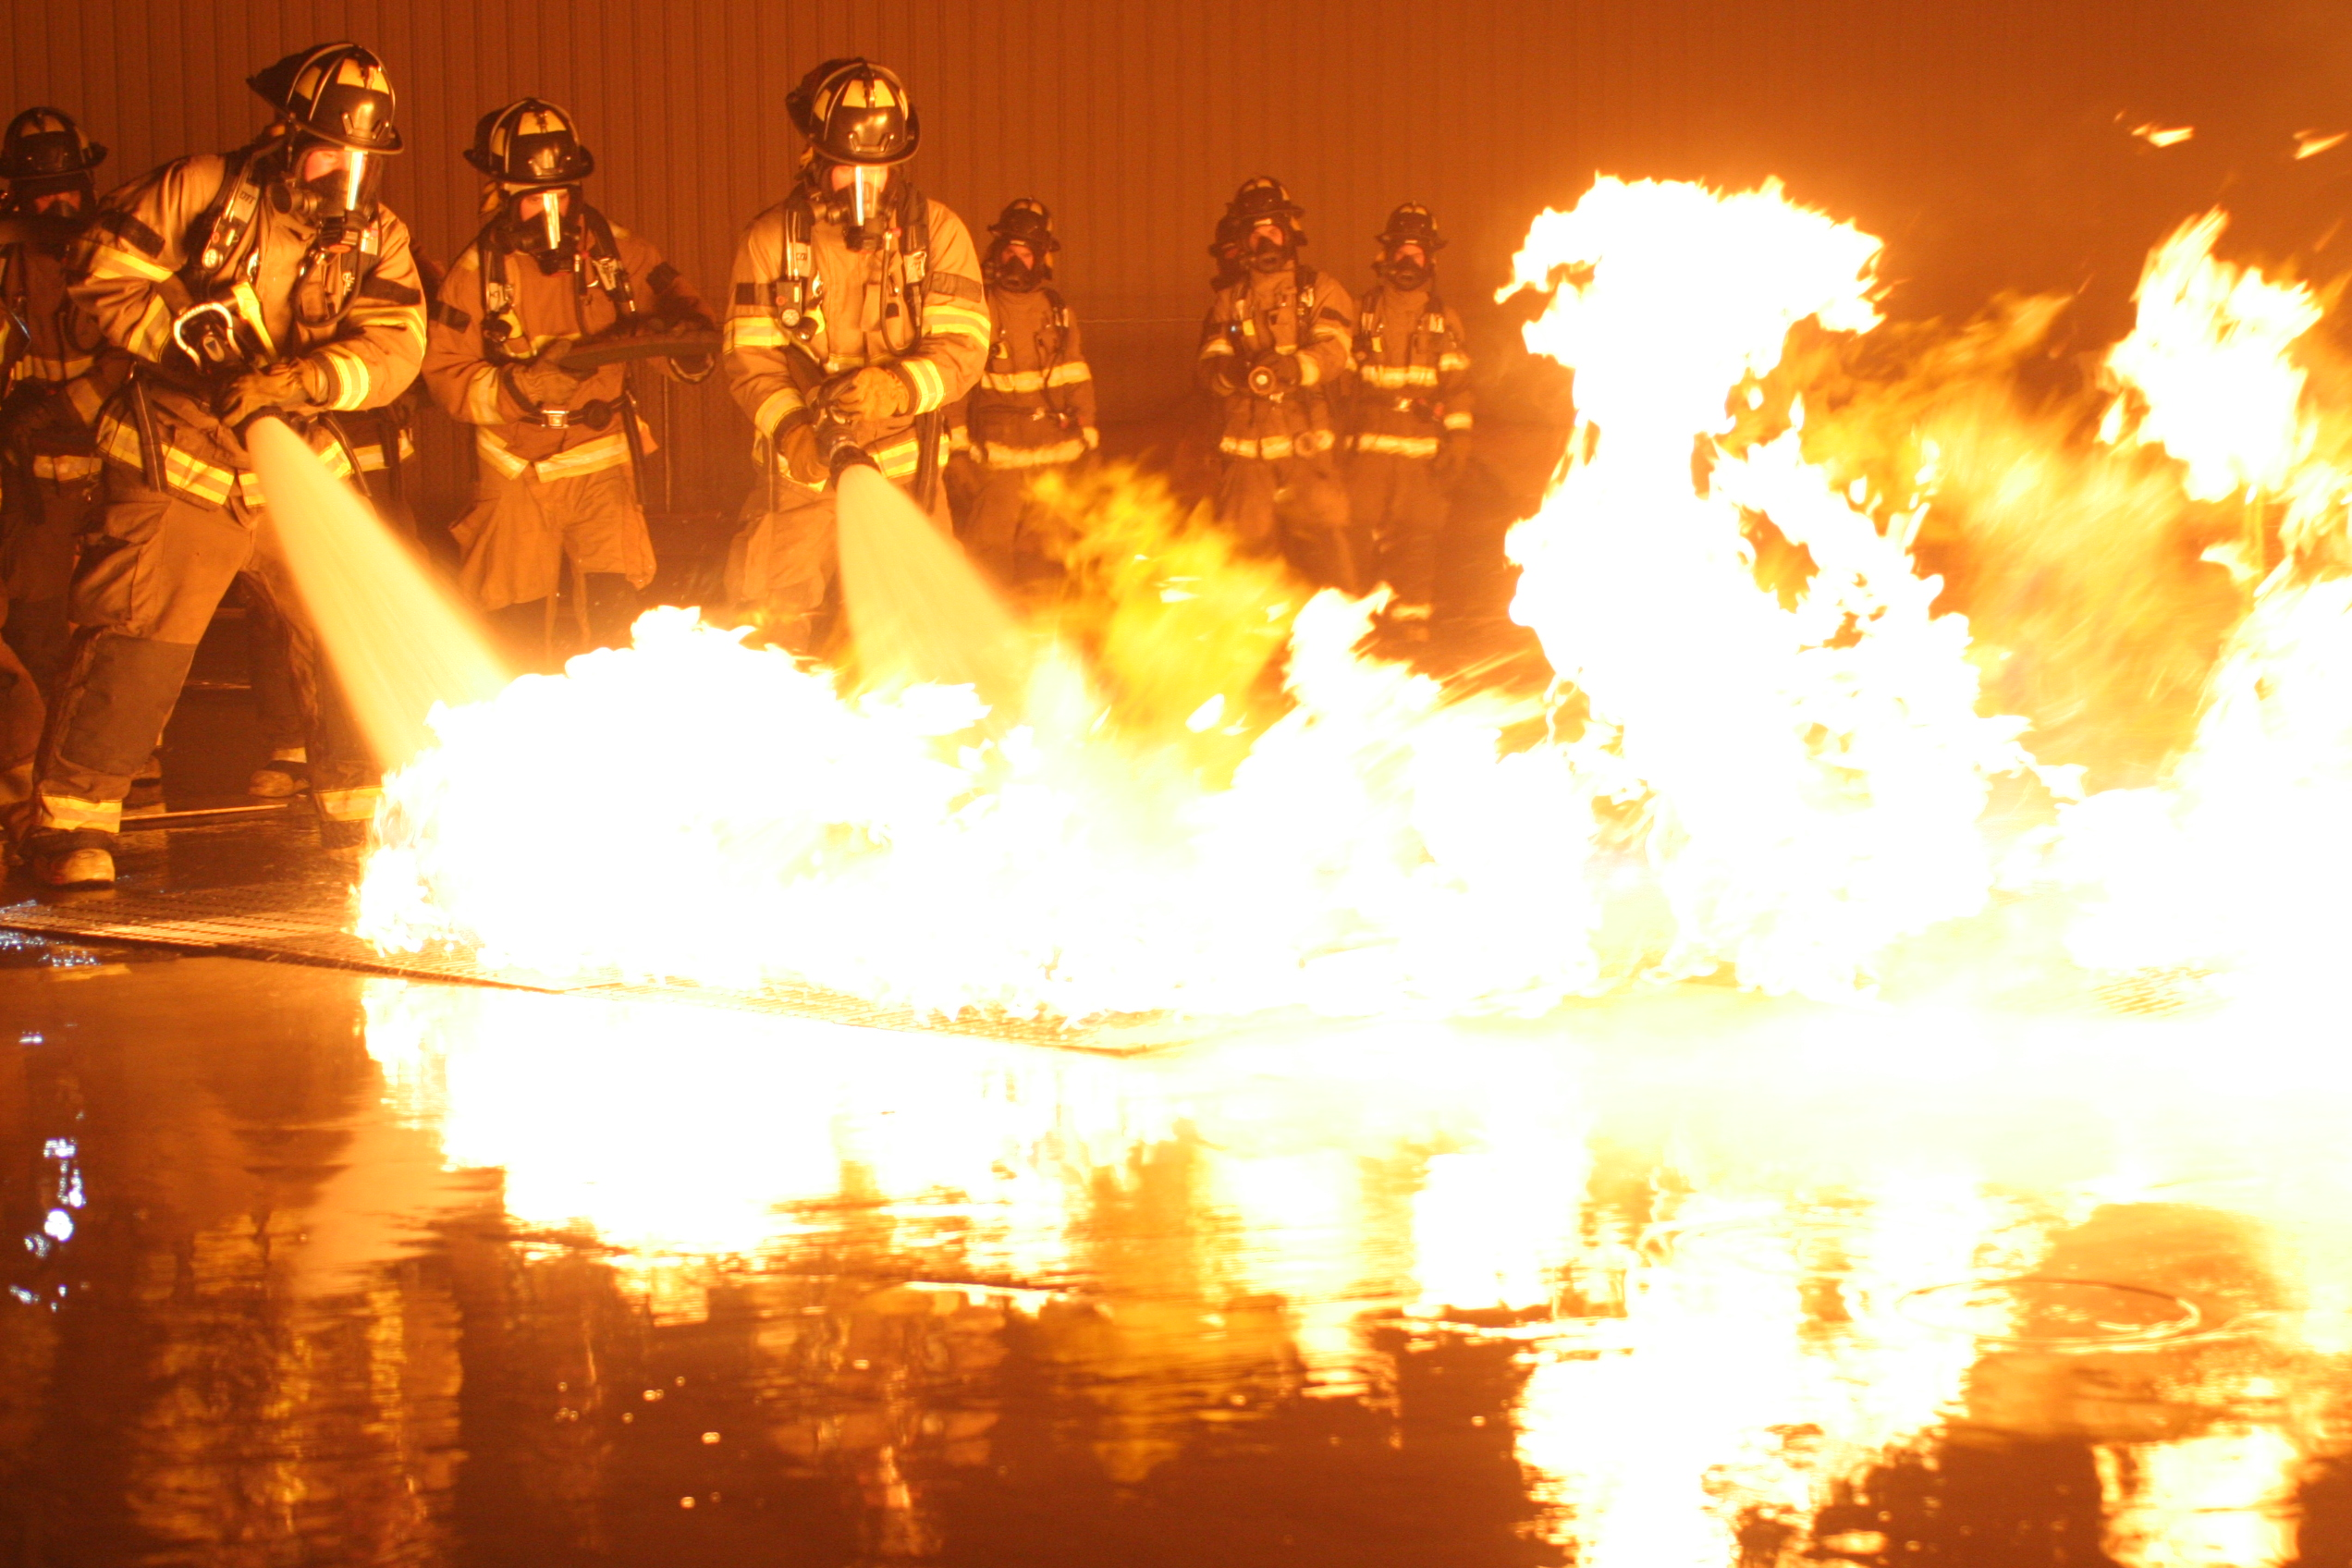 Firefighters engaged in a night training burn.